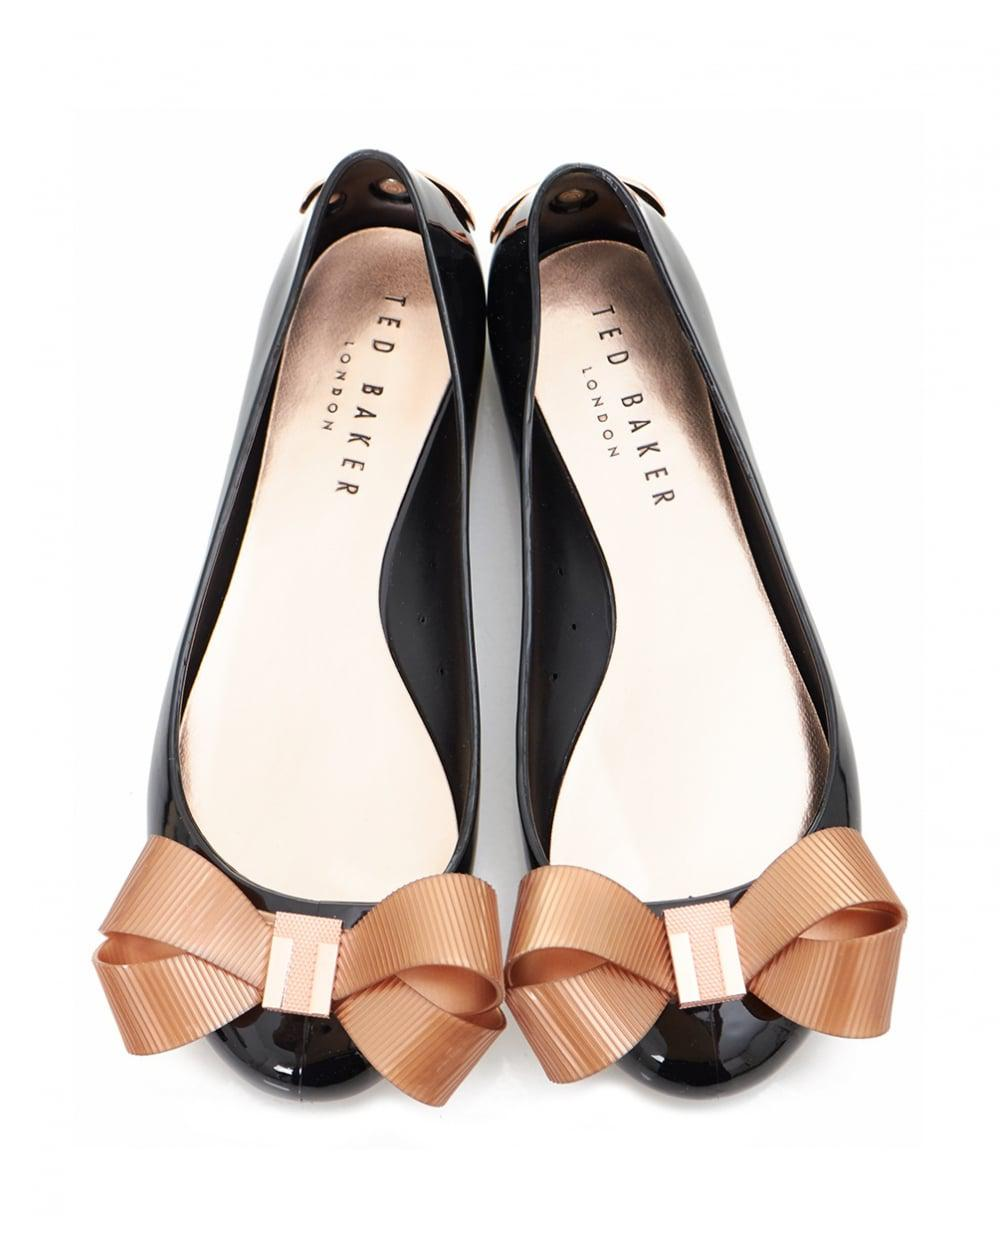 8cfde5a0ba26 Lyst - Ted Baker Bow Front Jelly Pumps in Black